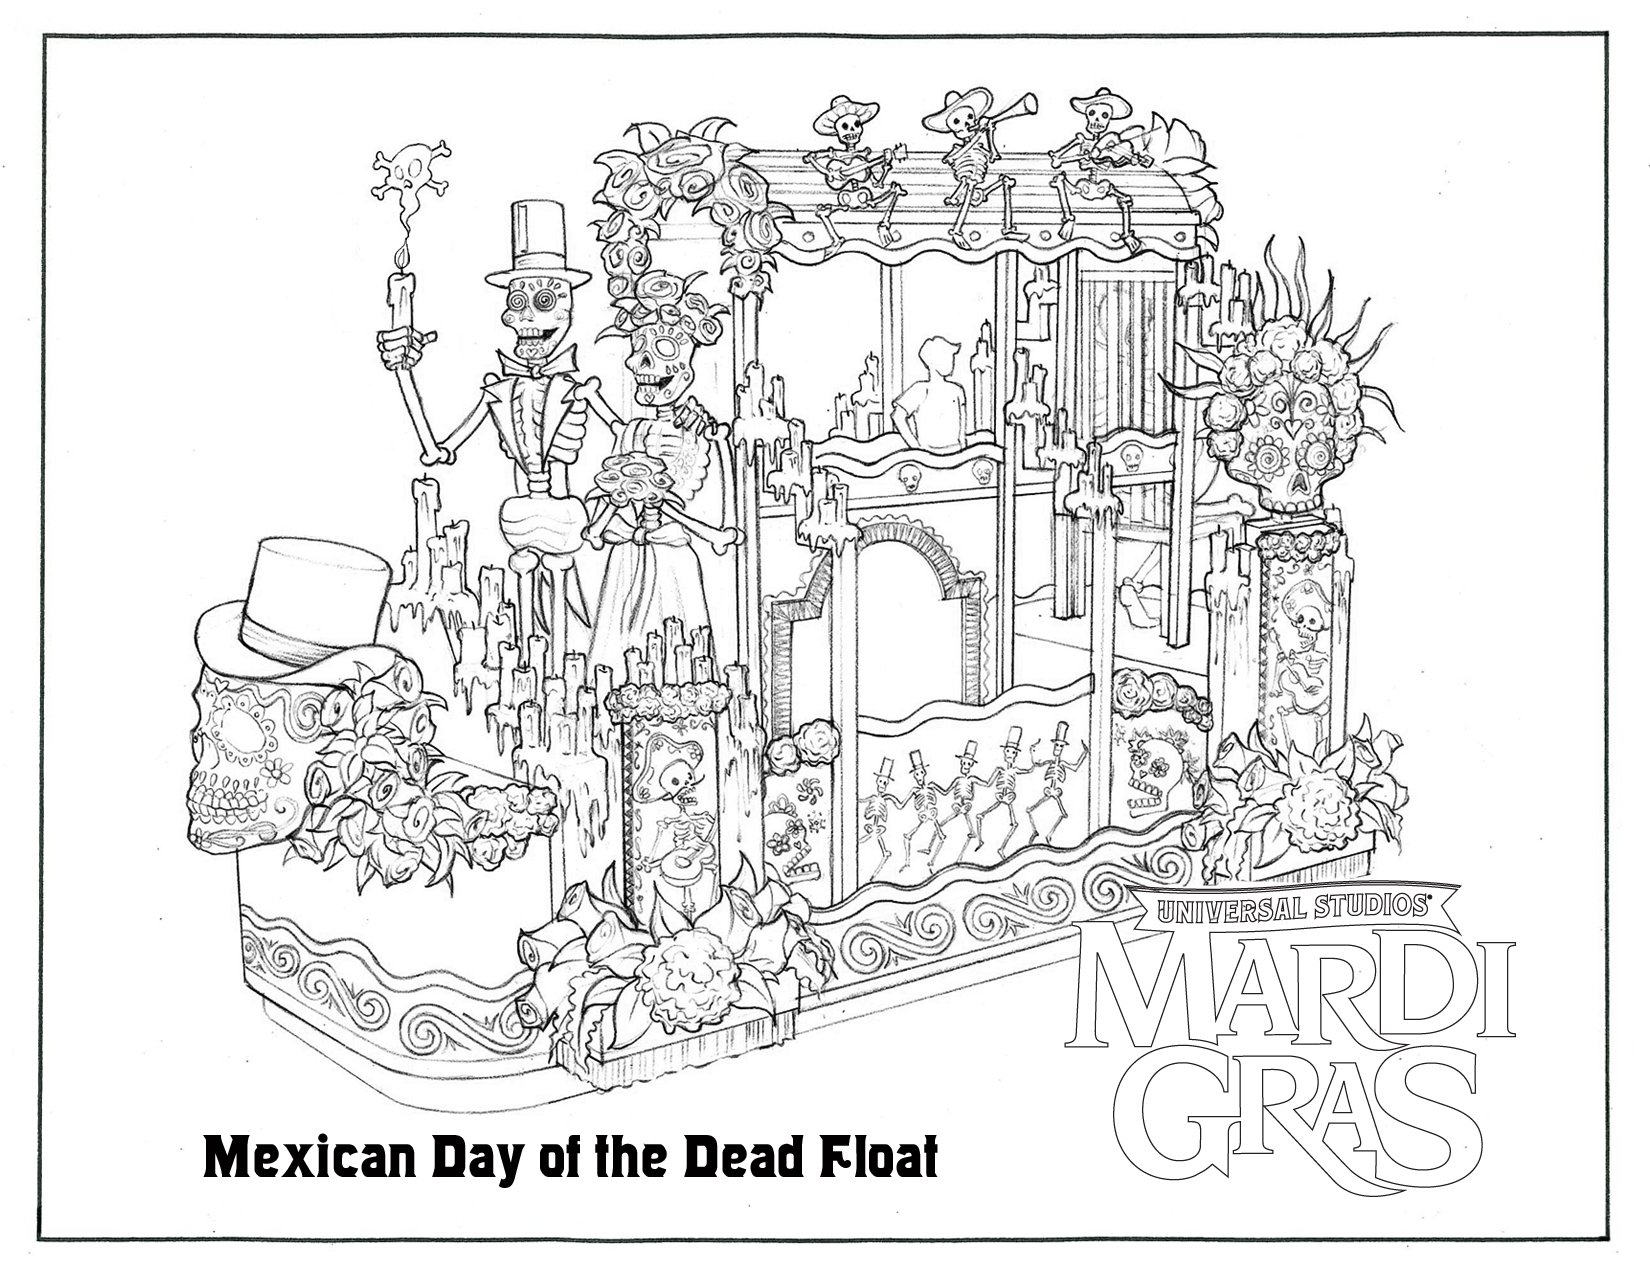 Coloring Pages For Universal Studios : Universal studios hollywood coloring pages sketch